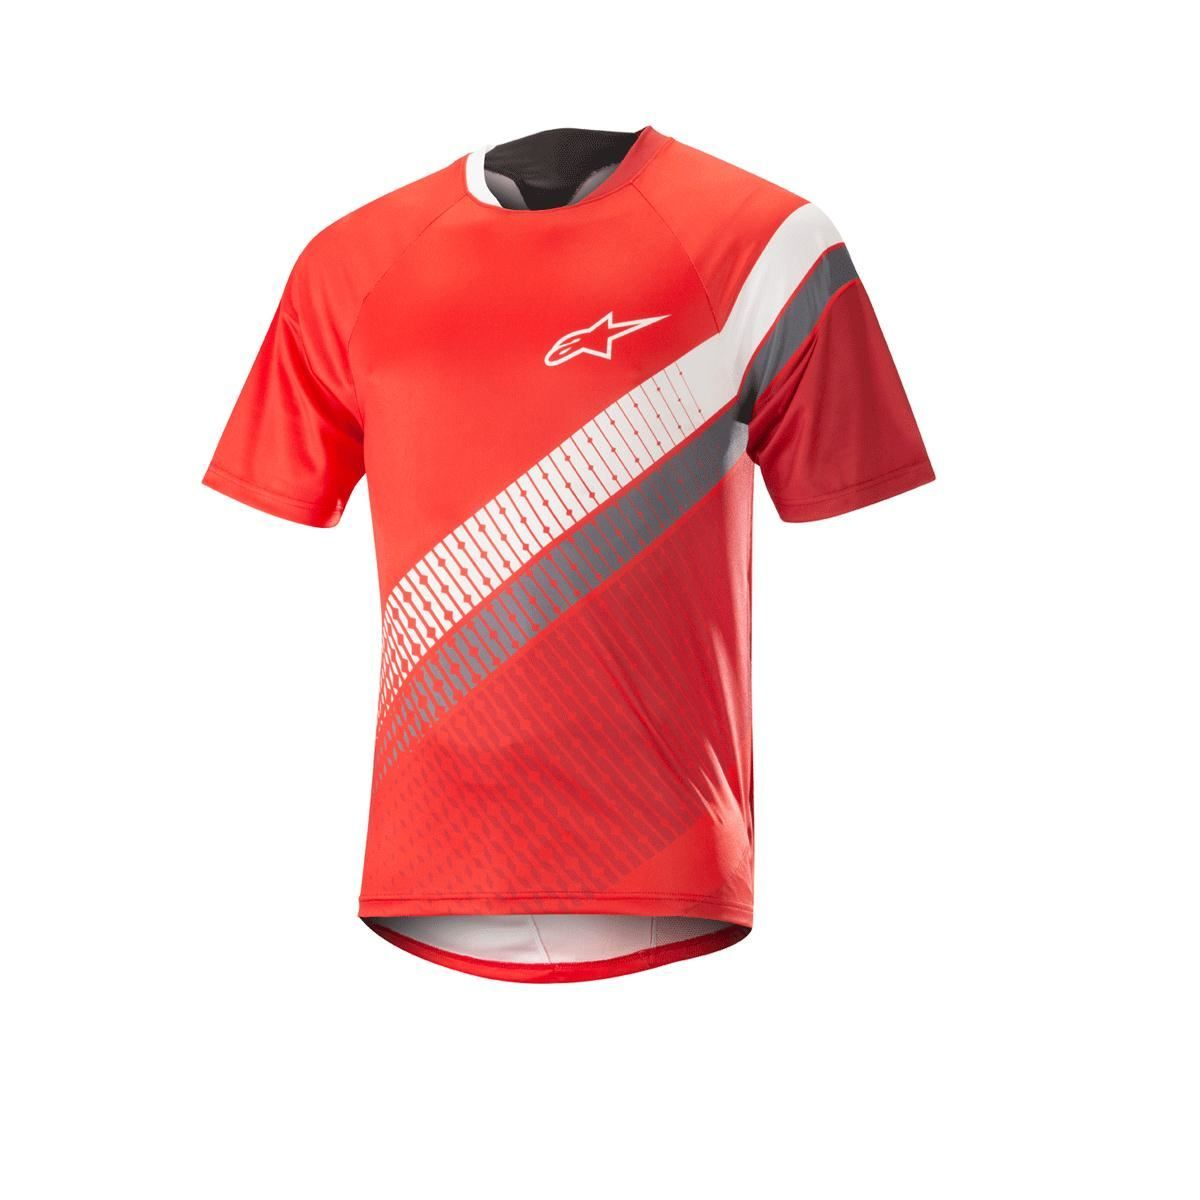 Alpinestars Predator Short Sleeve Jersey 2018: Red Cherry/White M